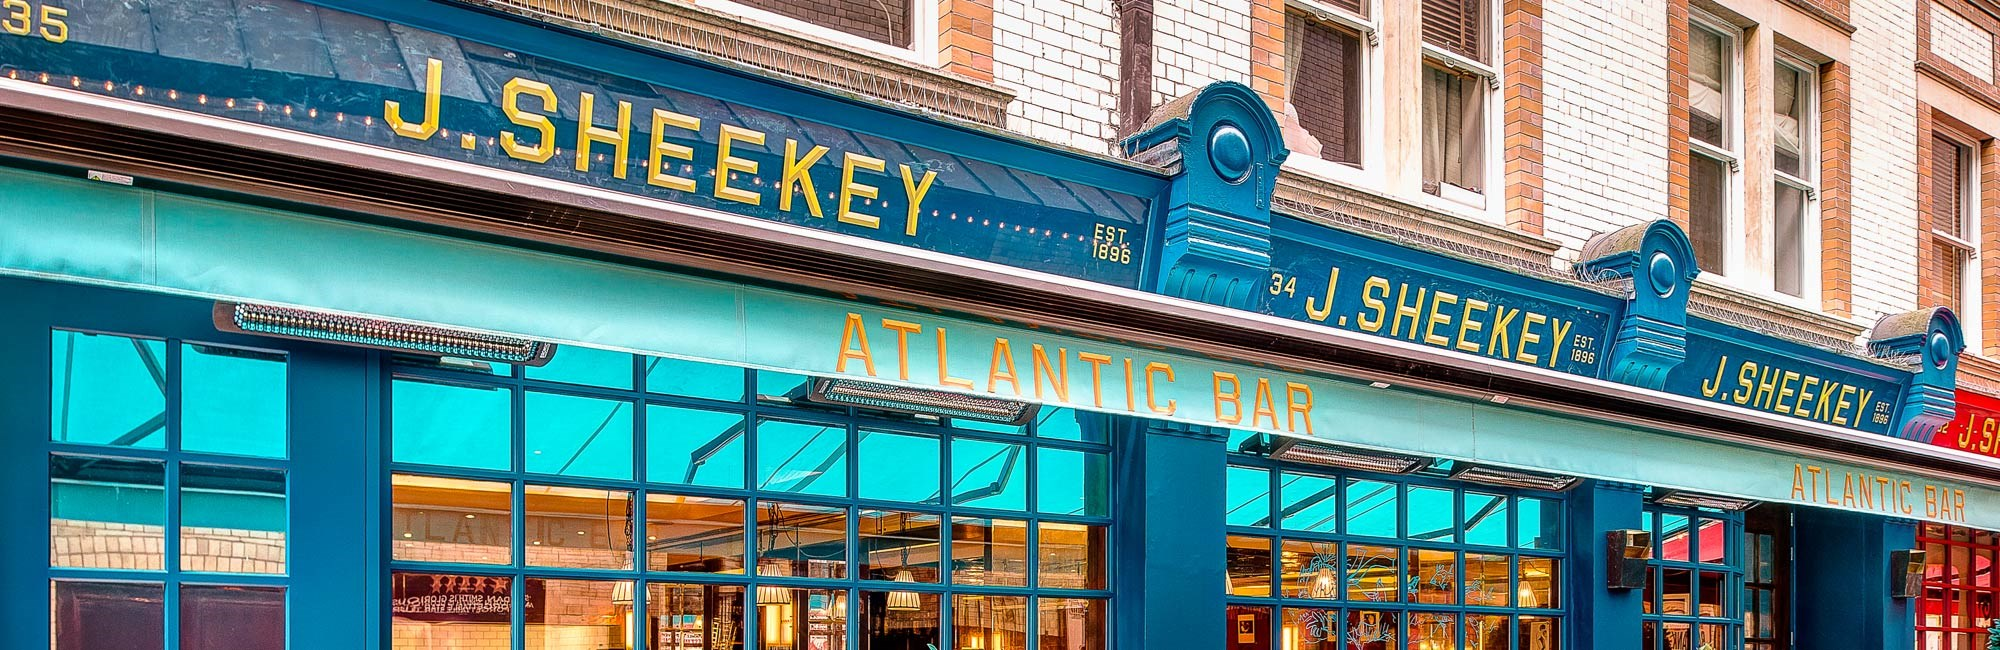 J Sheekey Atlantic Bar, Fish and Seafood Restaurant in Covent Garden